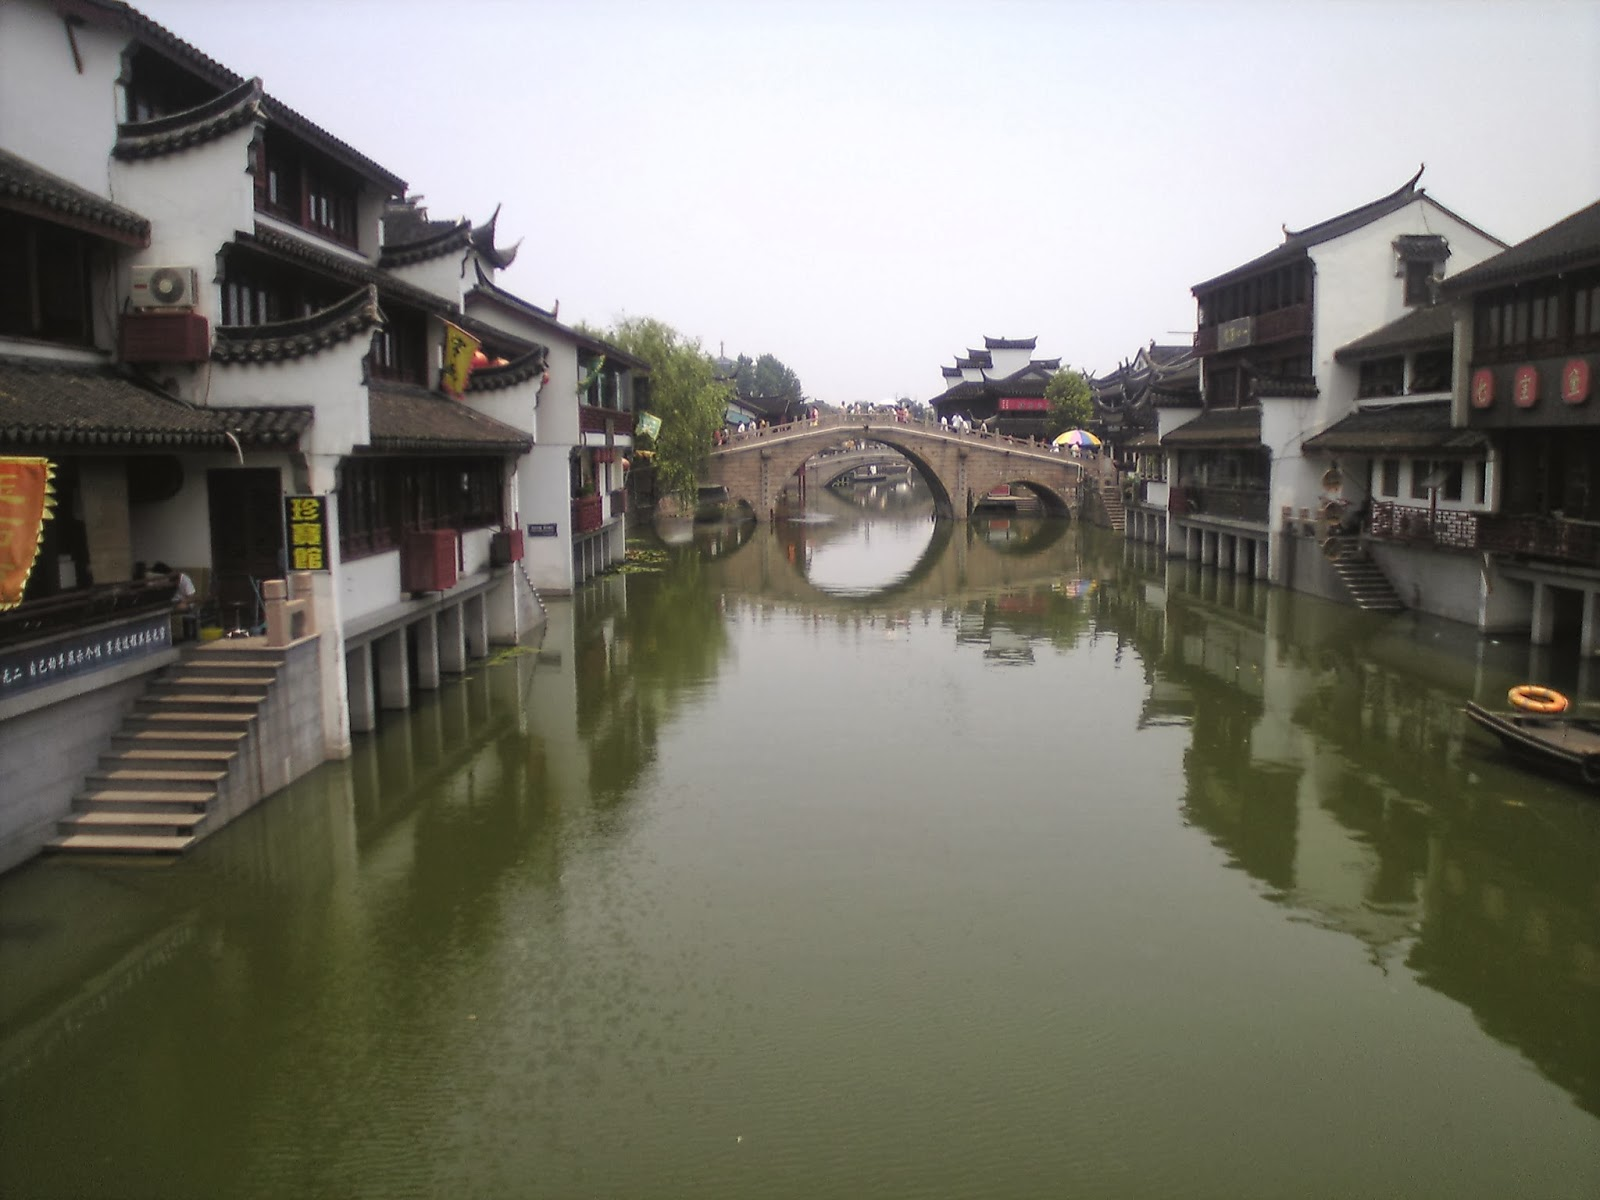 qibao ancient town qibao map seven treasures old town is area with buildings done in the old style selling lots of local food and snacks